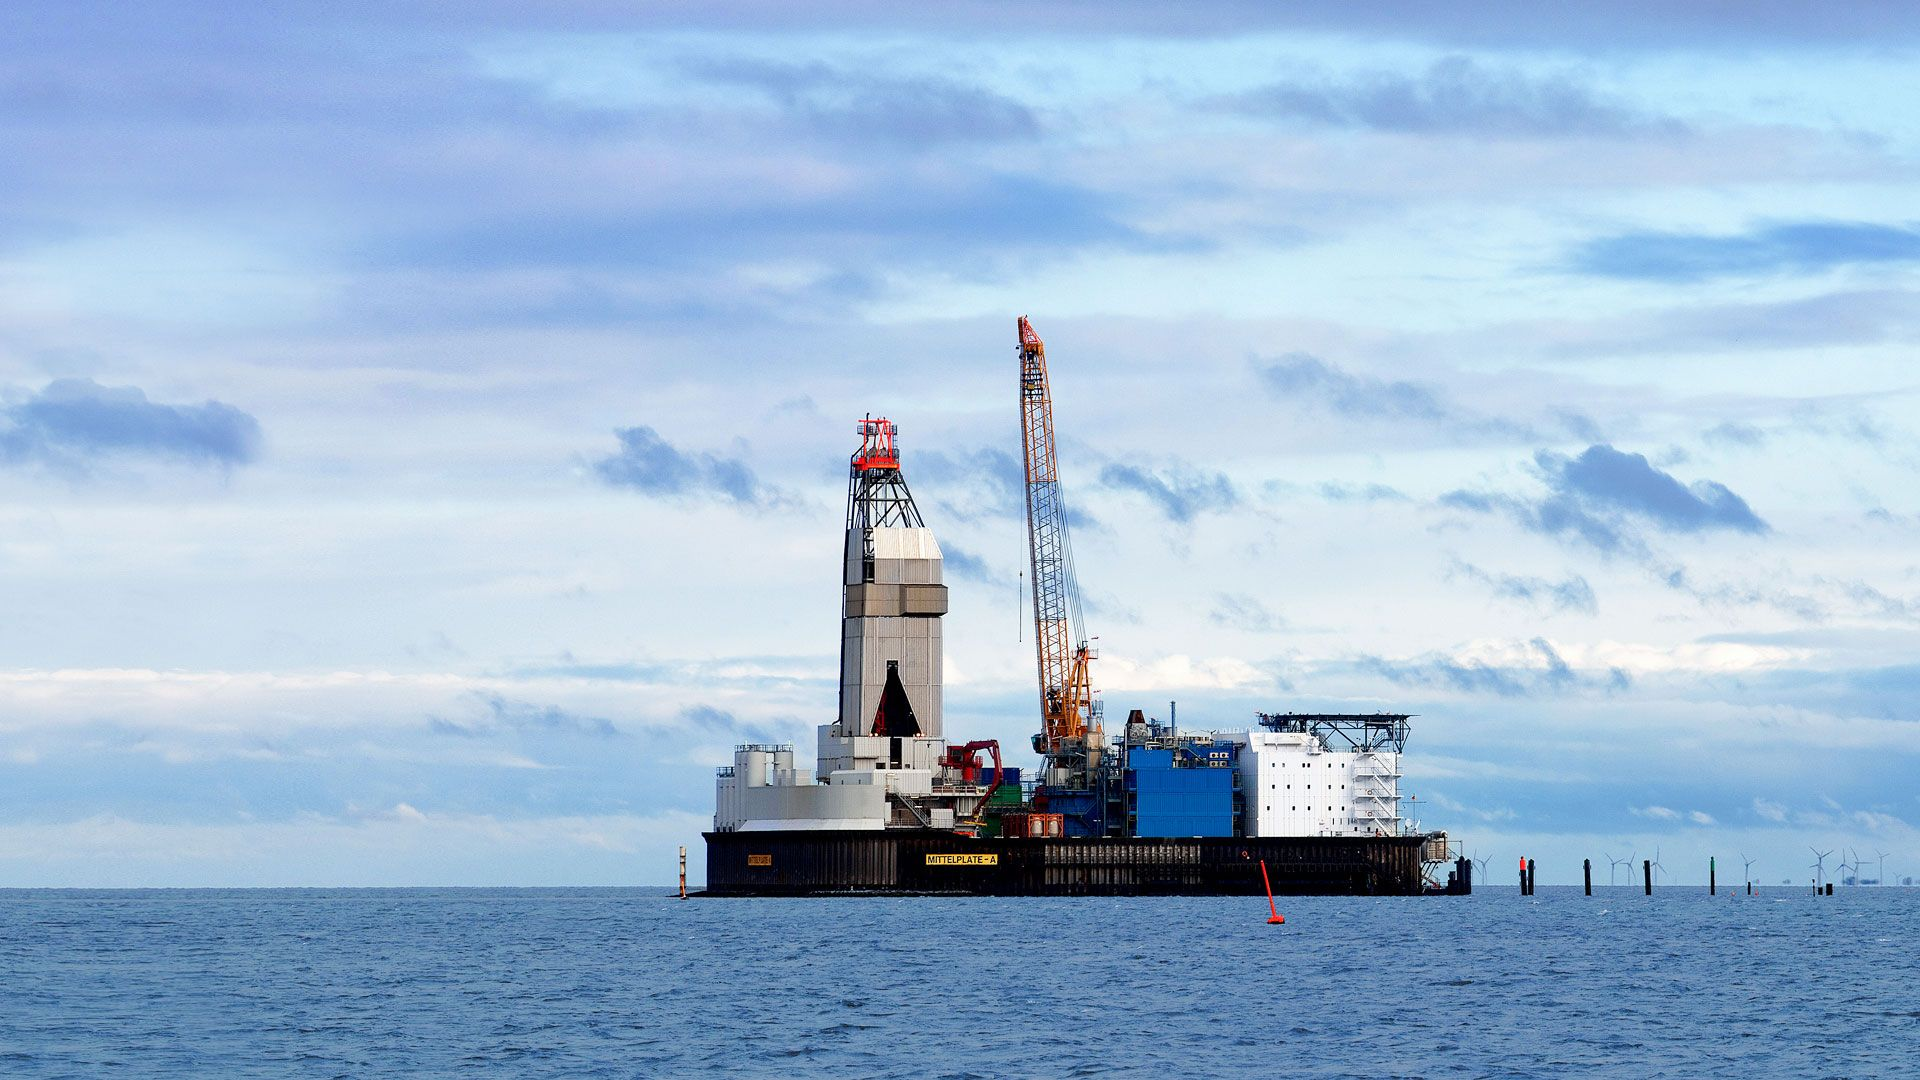 Wintershall Dea offshore Plattform Mittelplate Nordsee